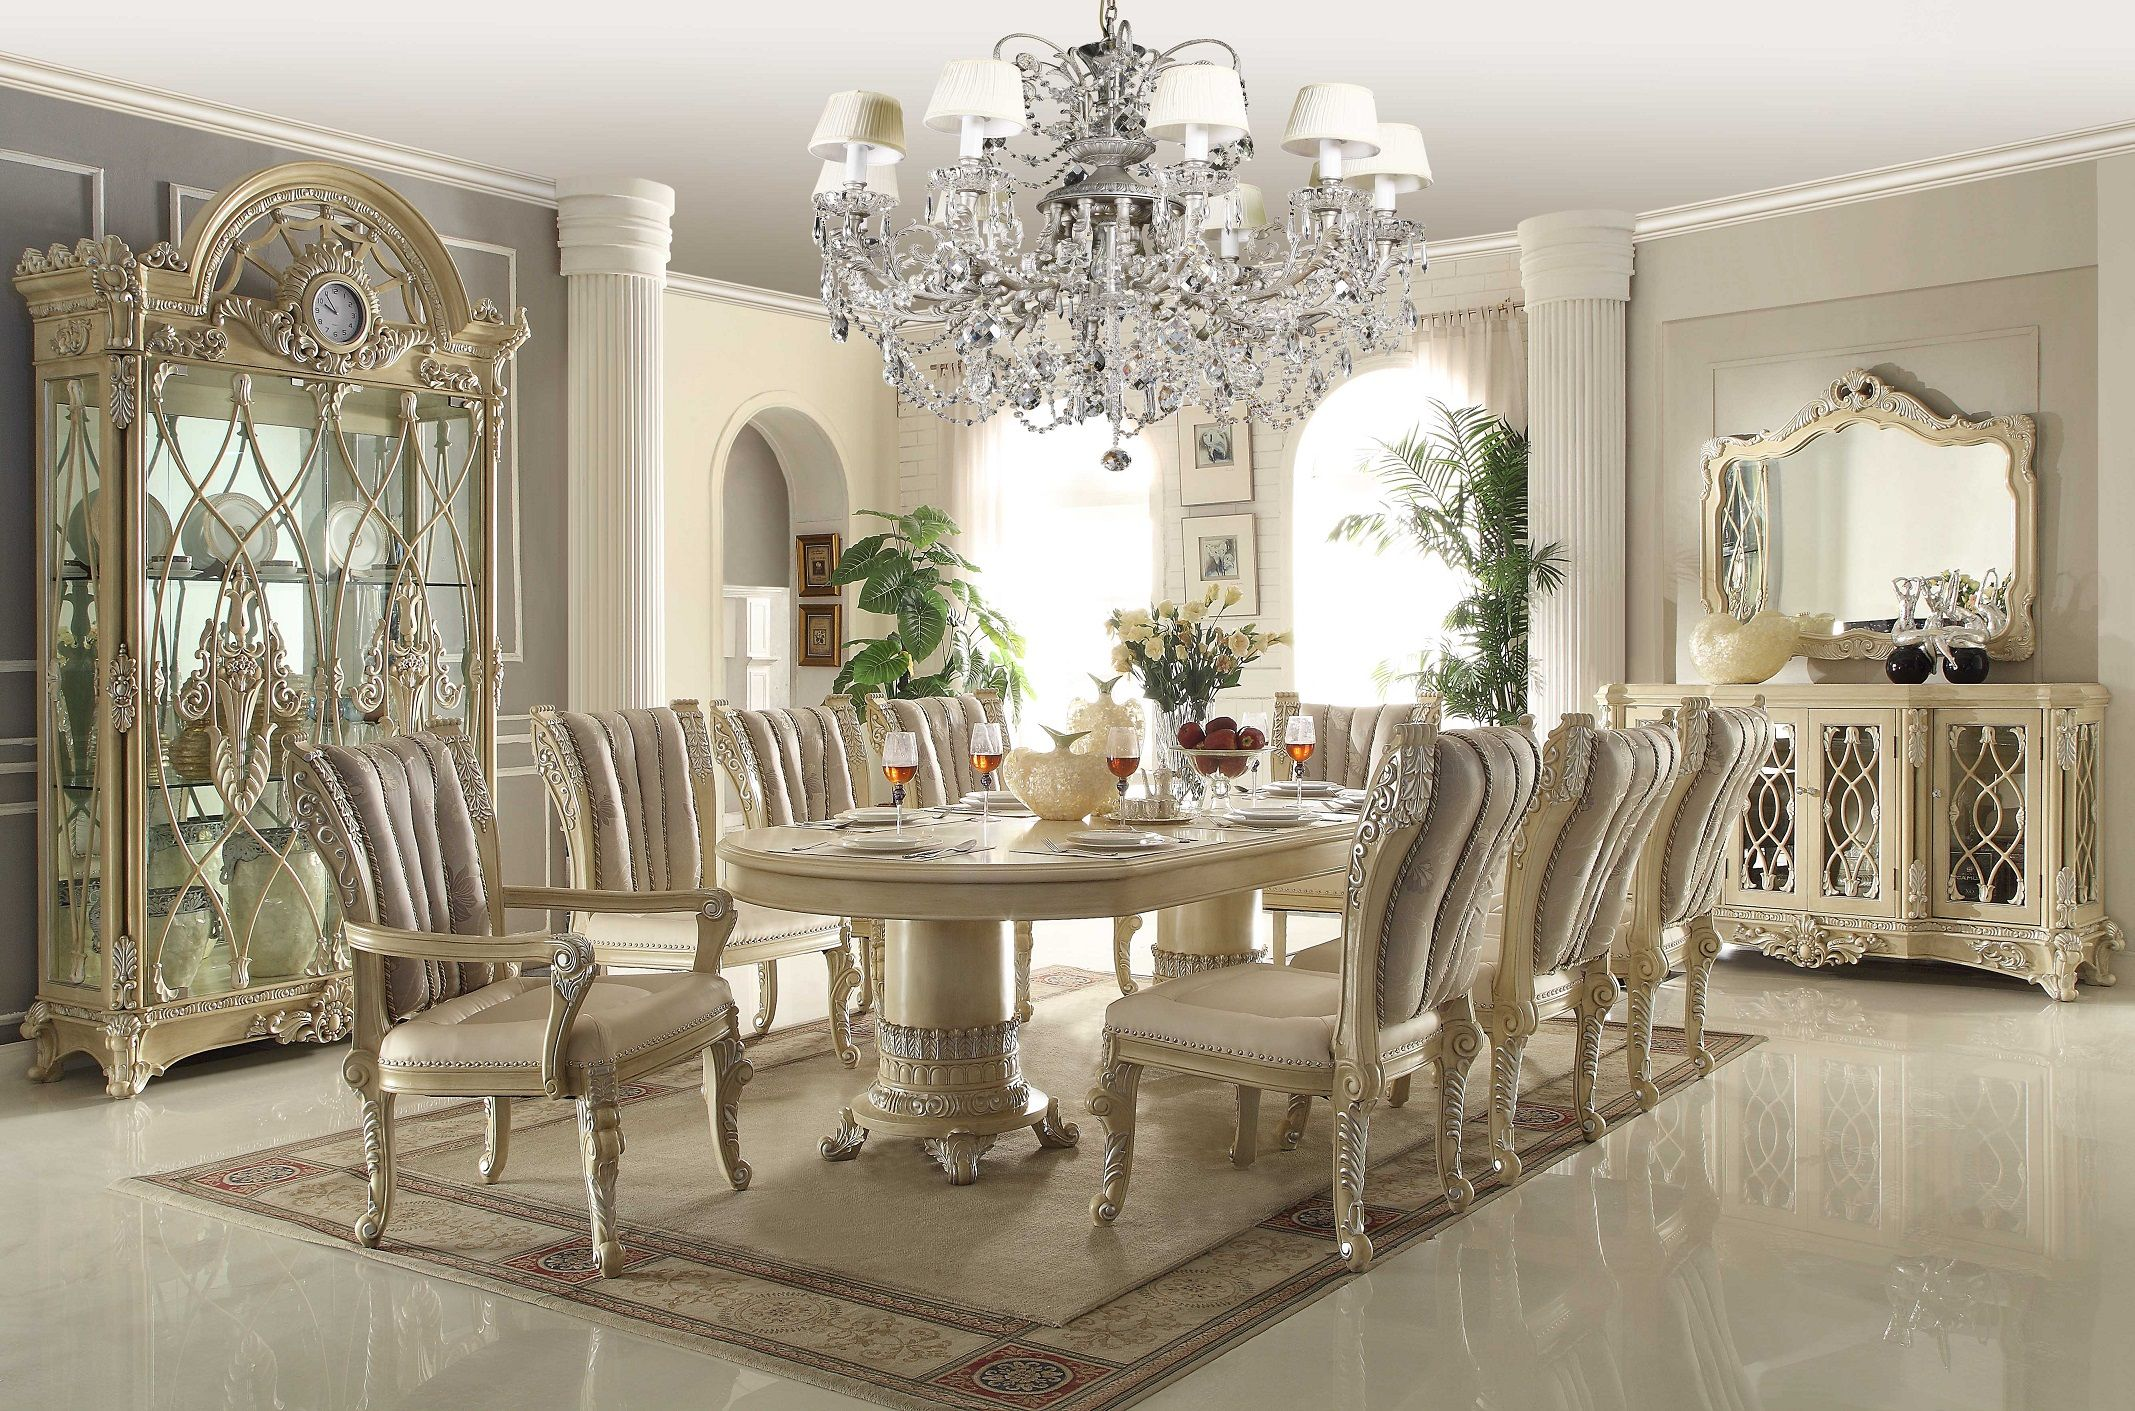 Hd 5800 Homey Design Royal Dining Collection Set Formal Dining